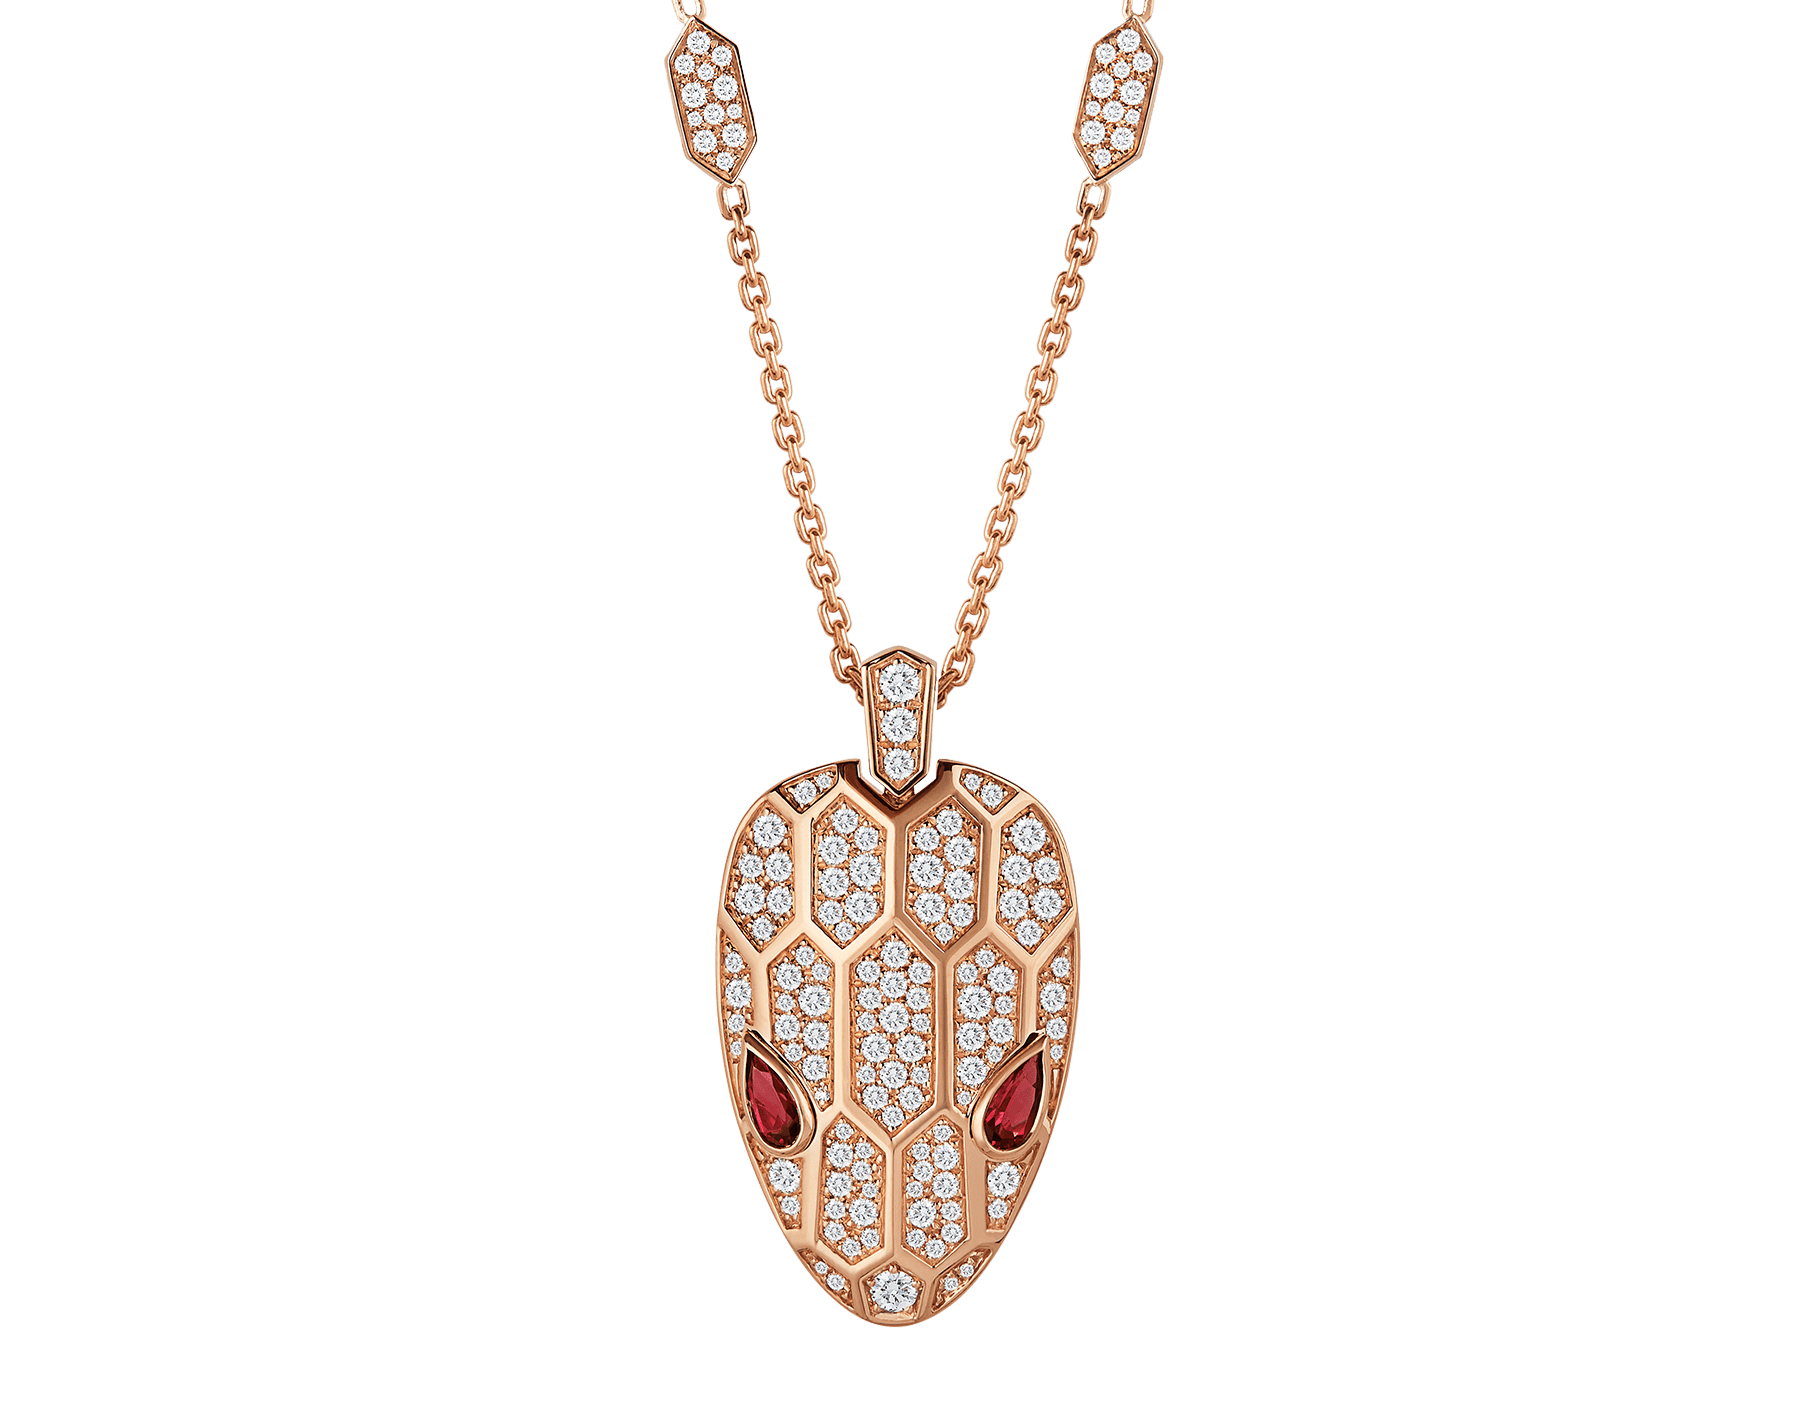 Serpenti necklace in 18 kt rose gold, set with rubellite eyes and with pavé diamonds on the chain and the head. 352725 image 1